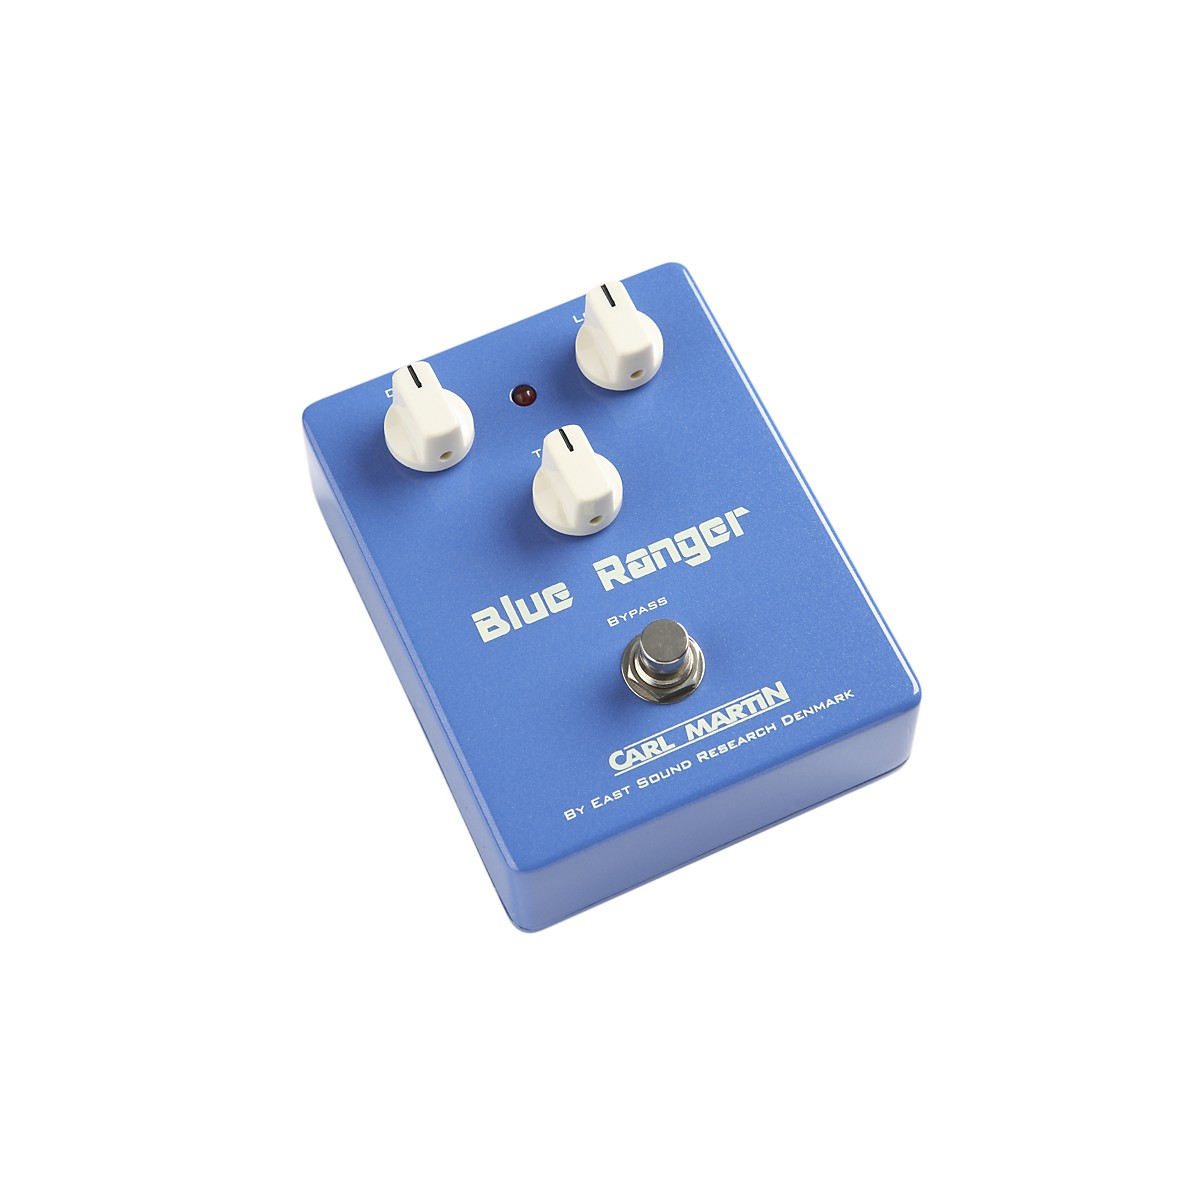 Carl Martin Blue Ranger Guitar Effects Pedal